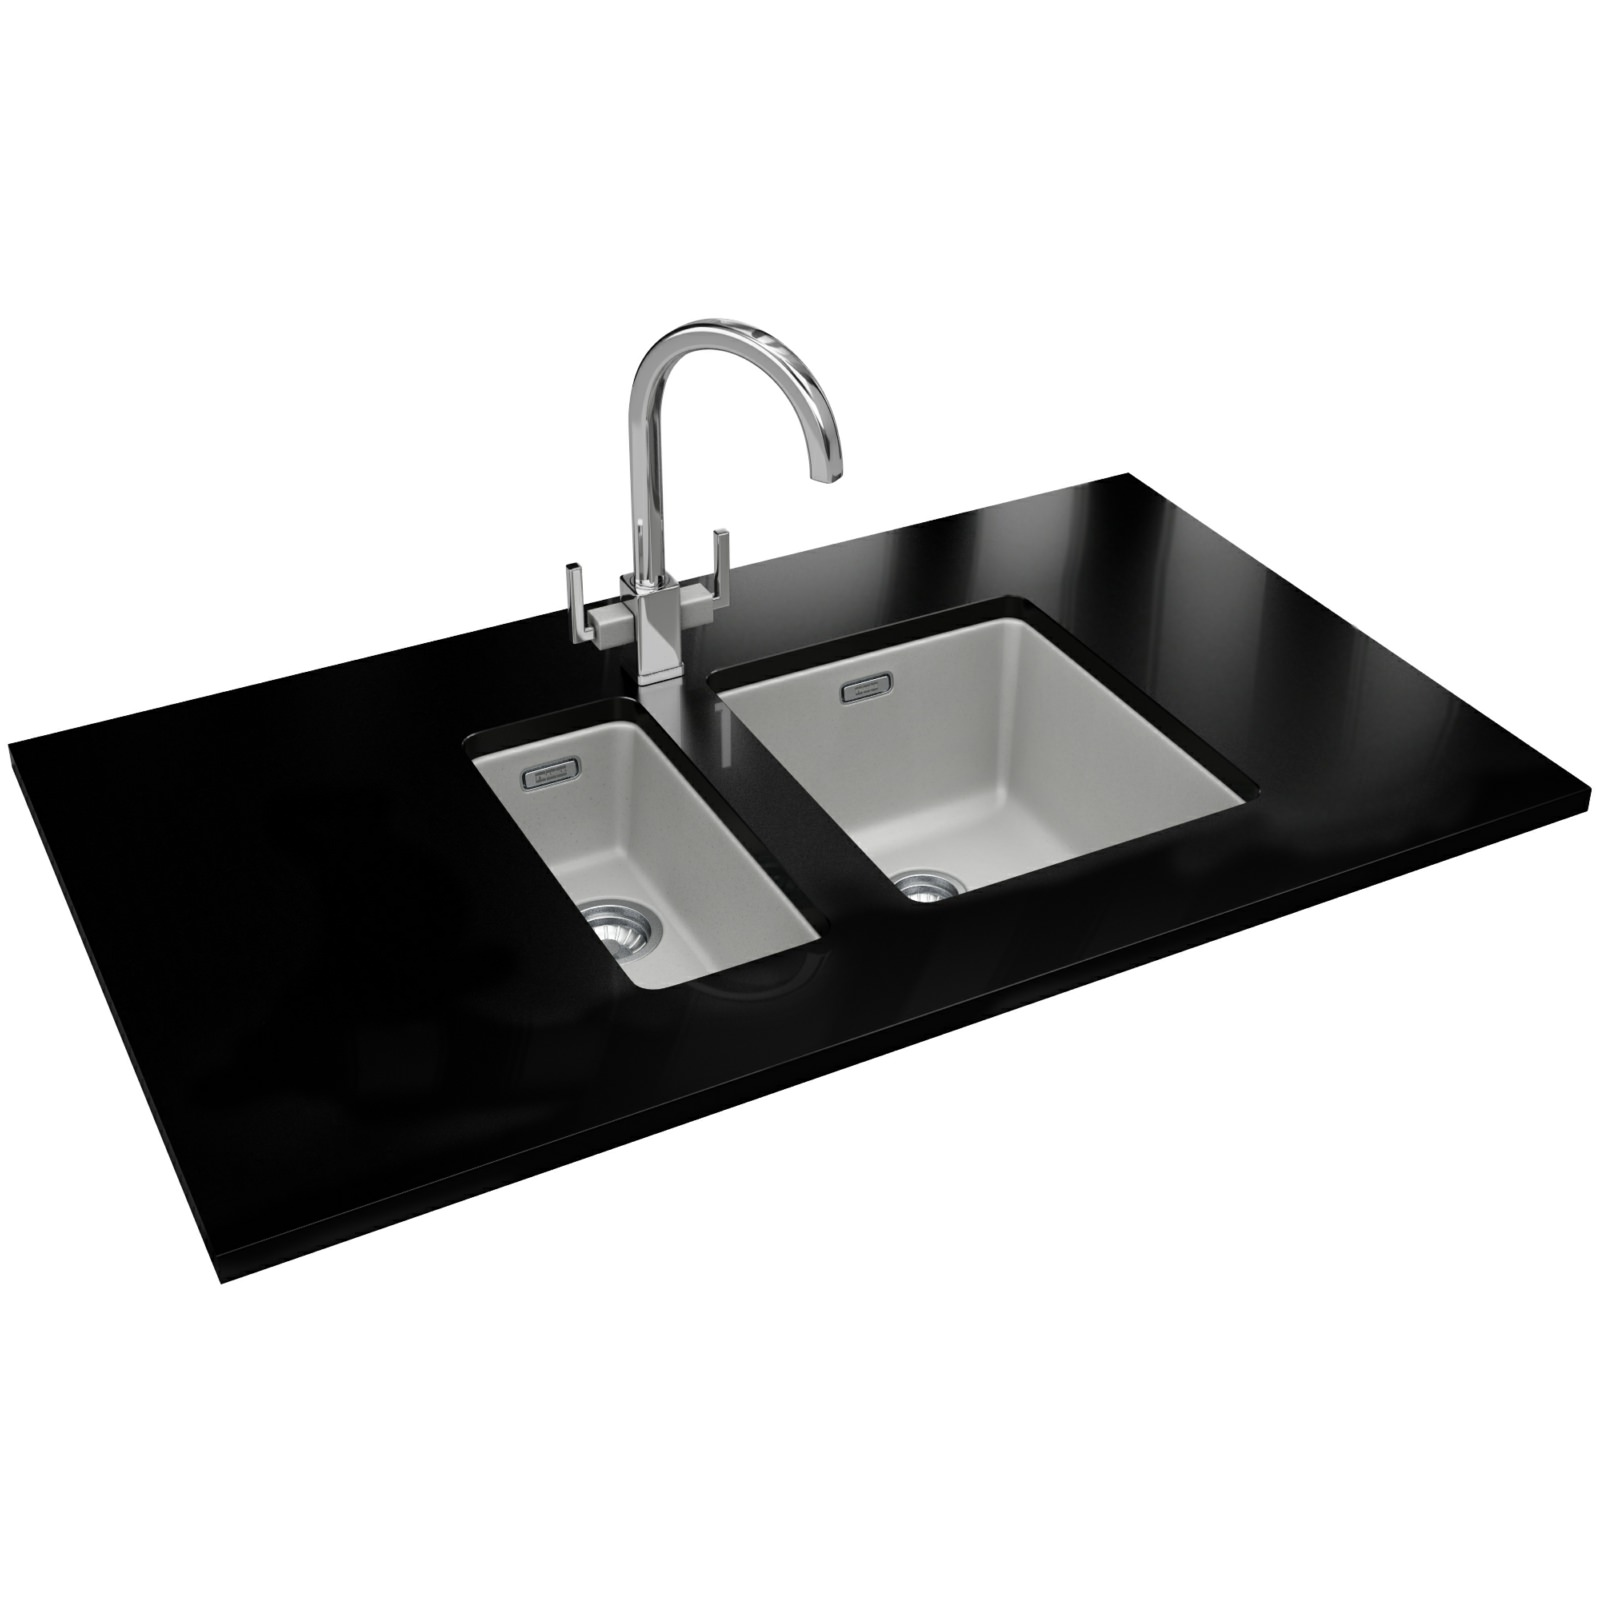 Franke Fragranite Undermount Sink : ... Franke Kubus KBG 110 34 Fragranite Polar White 1.0 Bowl Undermount